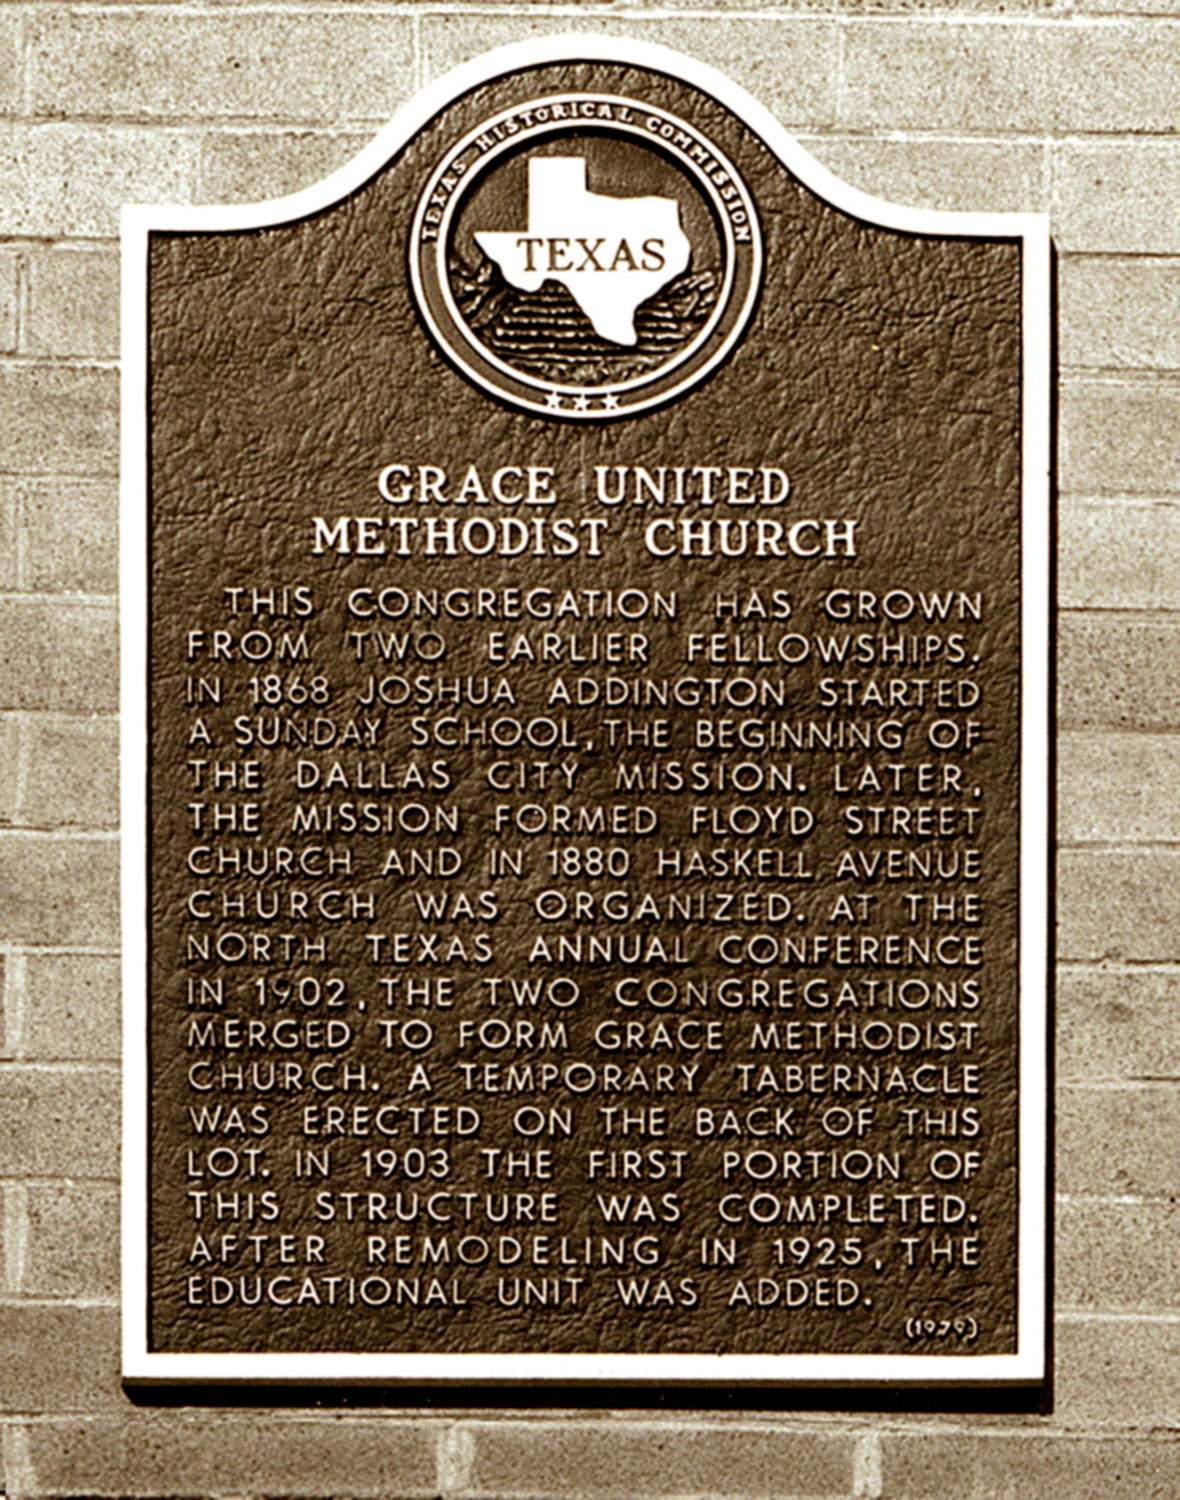 statehistorical plaque.jpg